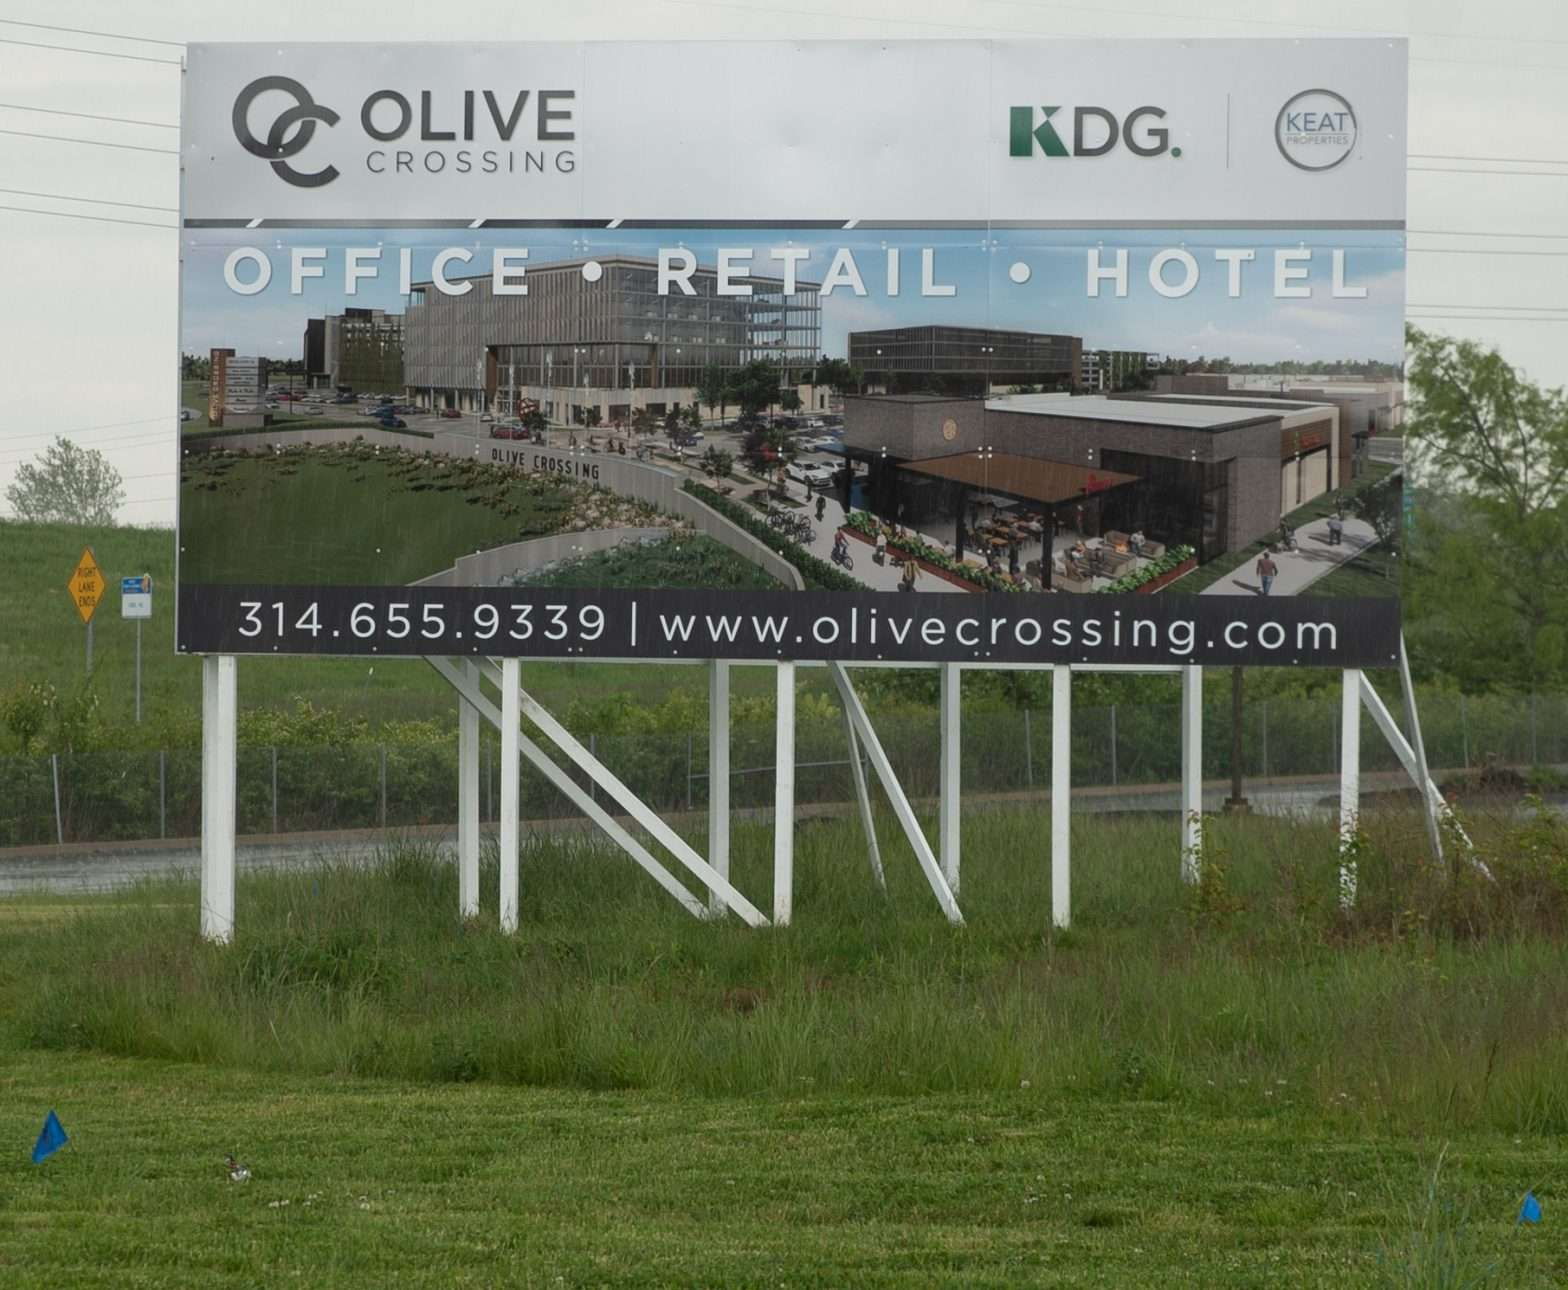 Billboard for Olive Crossing Development by Keat Properties at Olive Blvd and I-70 May 14, 2020.